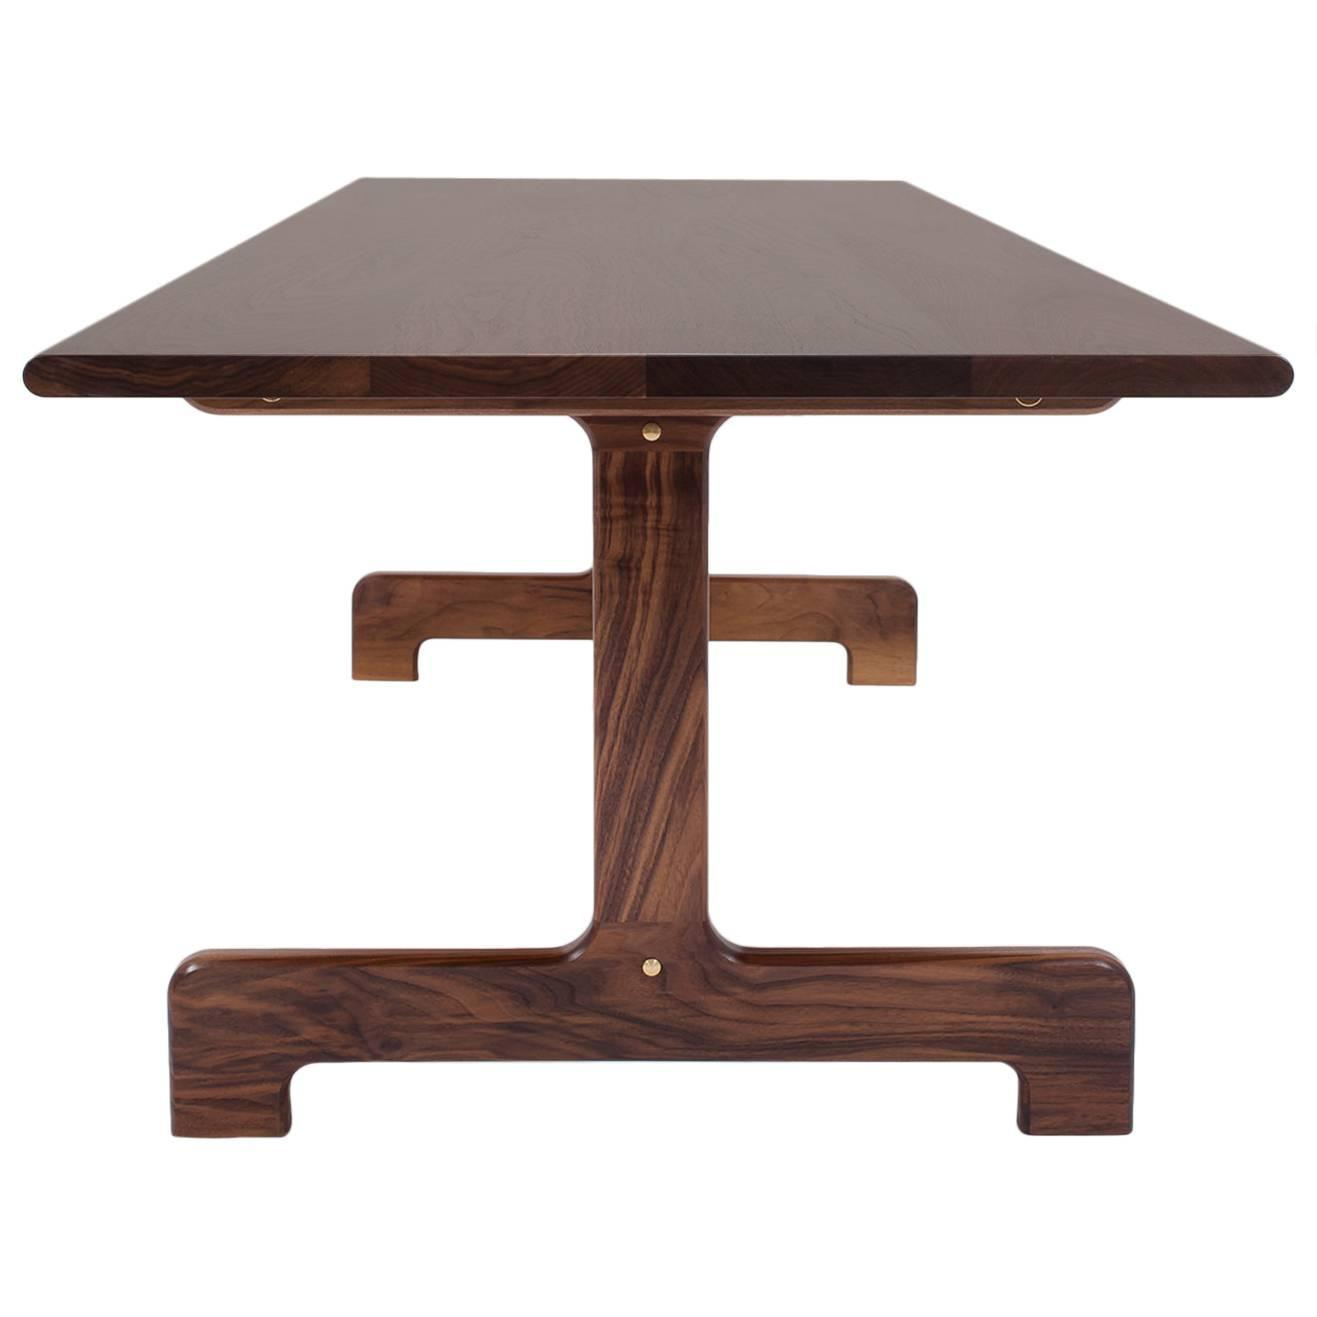 asa pingree physalia dining table in american walnut for sale at 1stdibs. Black Bedroom Furniture Sets. Home Design Ideas